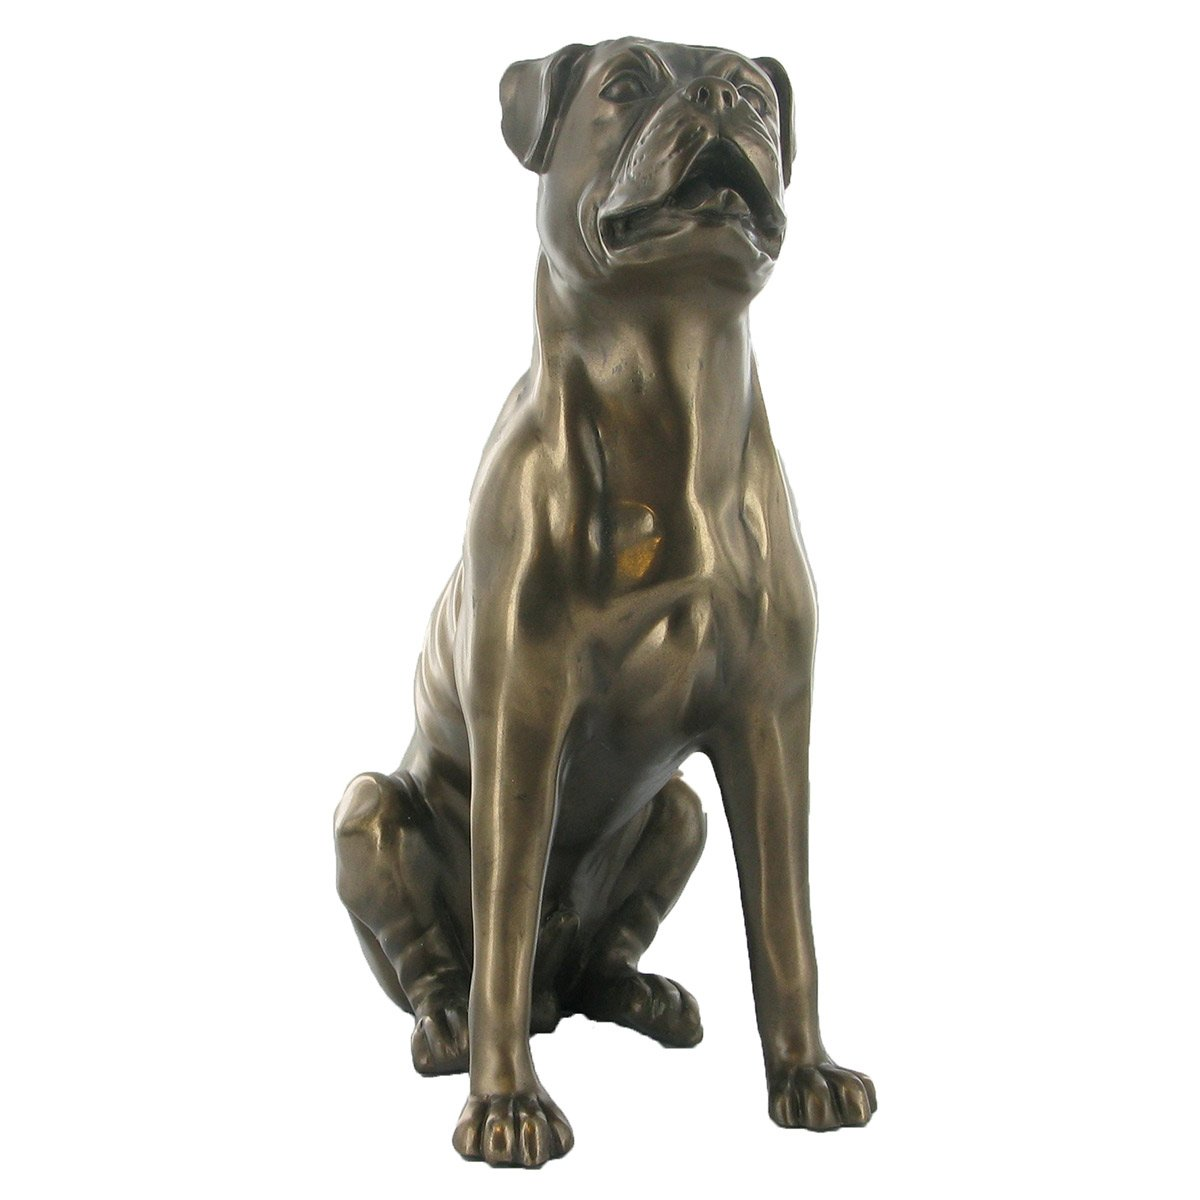 Boxer Dog Bronzed Sculpture Statue